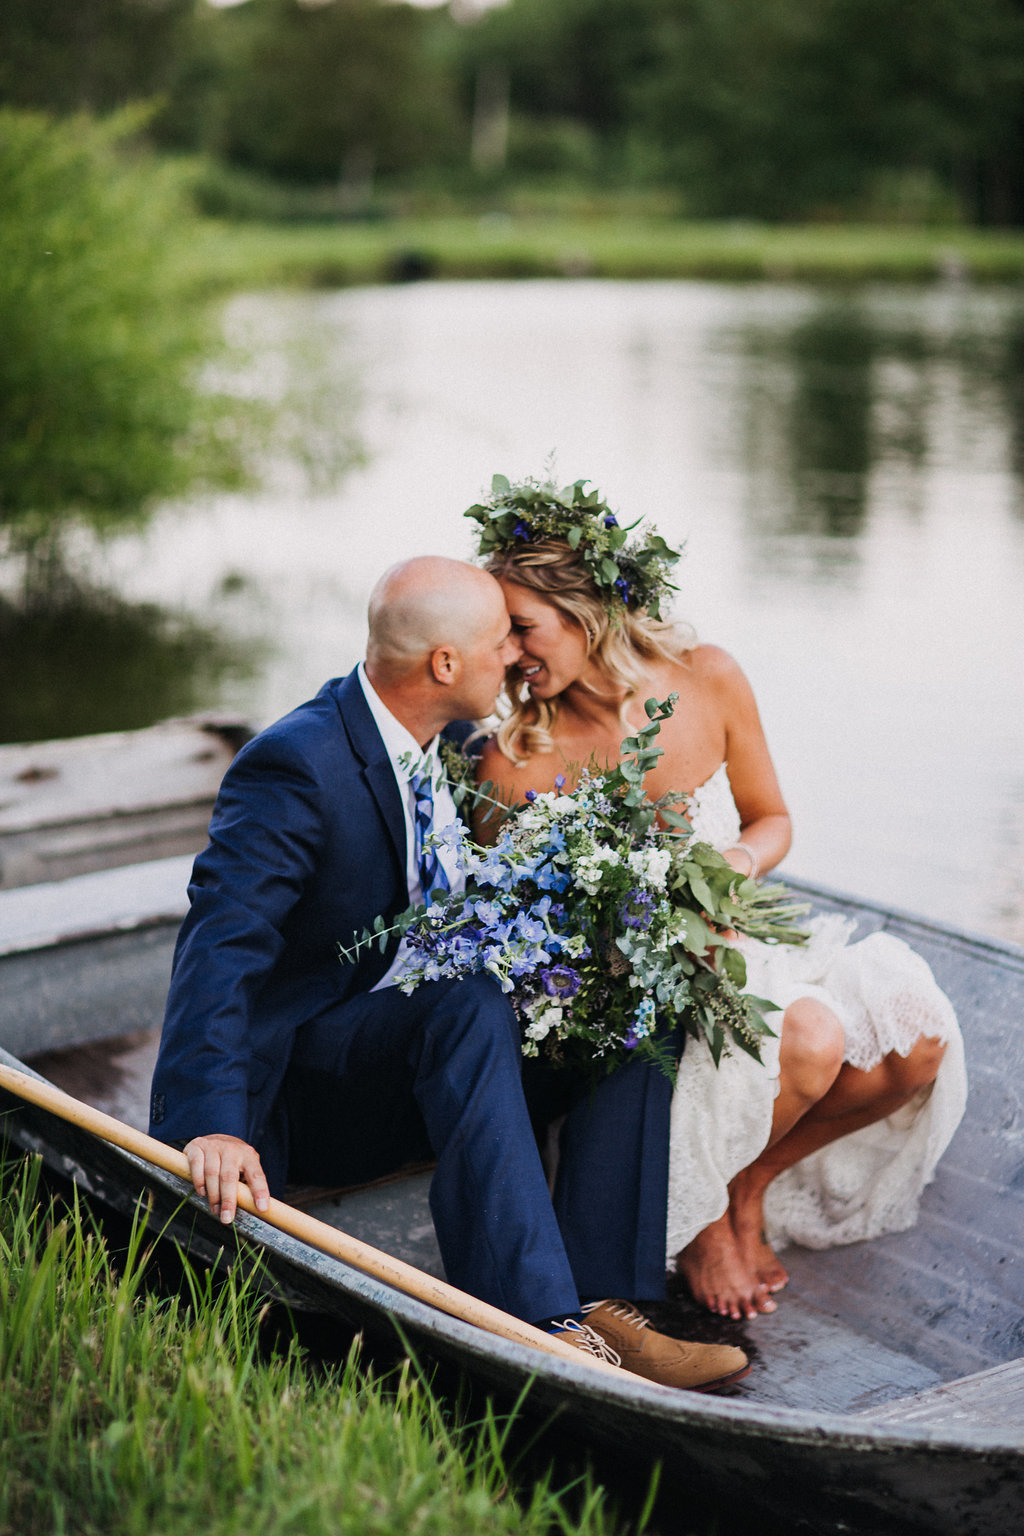 Monica_Relyea_Events_Dawn_Honsky_Photography_bride_and_groom_Nostrano_vineyard_rowboat_flowercrown_Meg_and_TJ